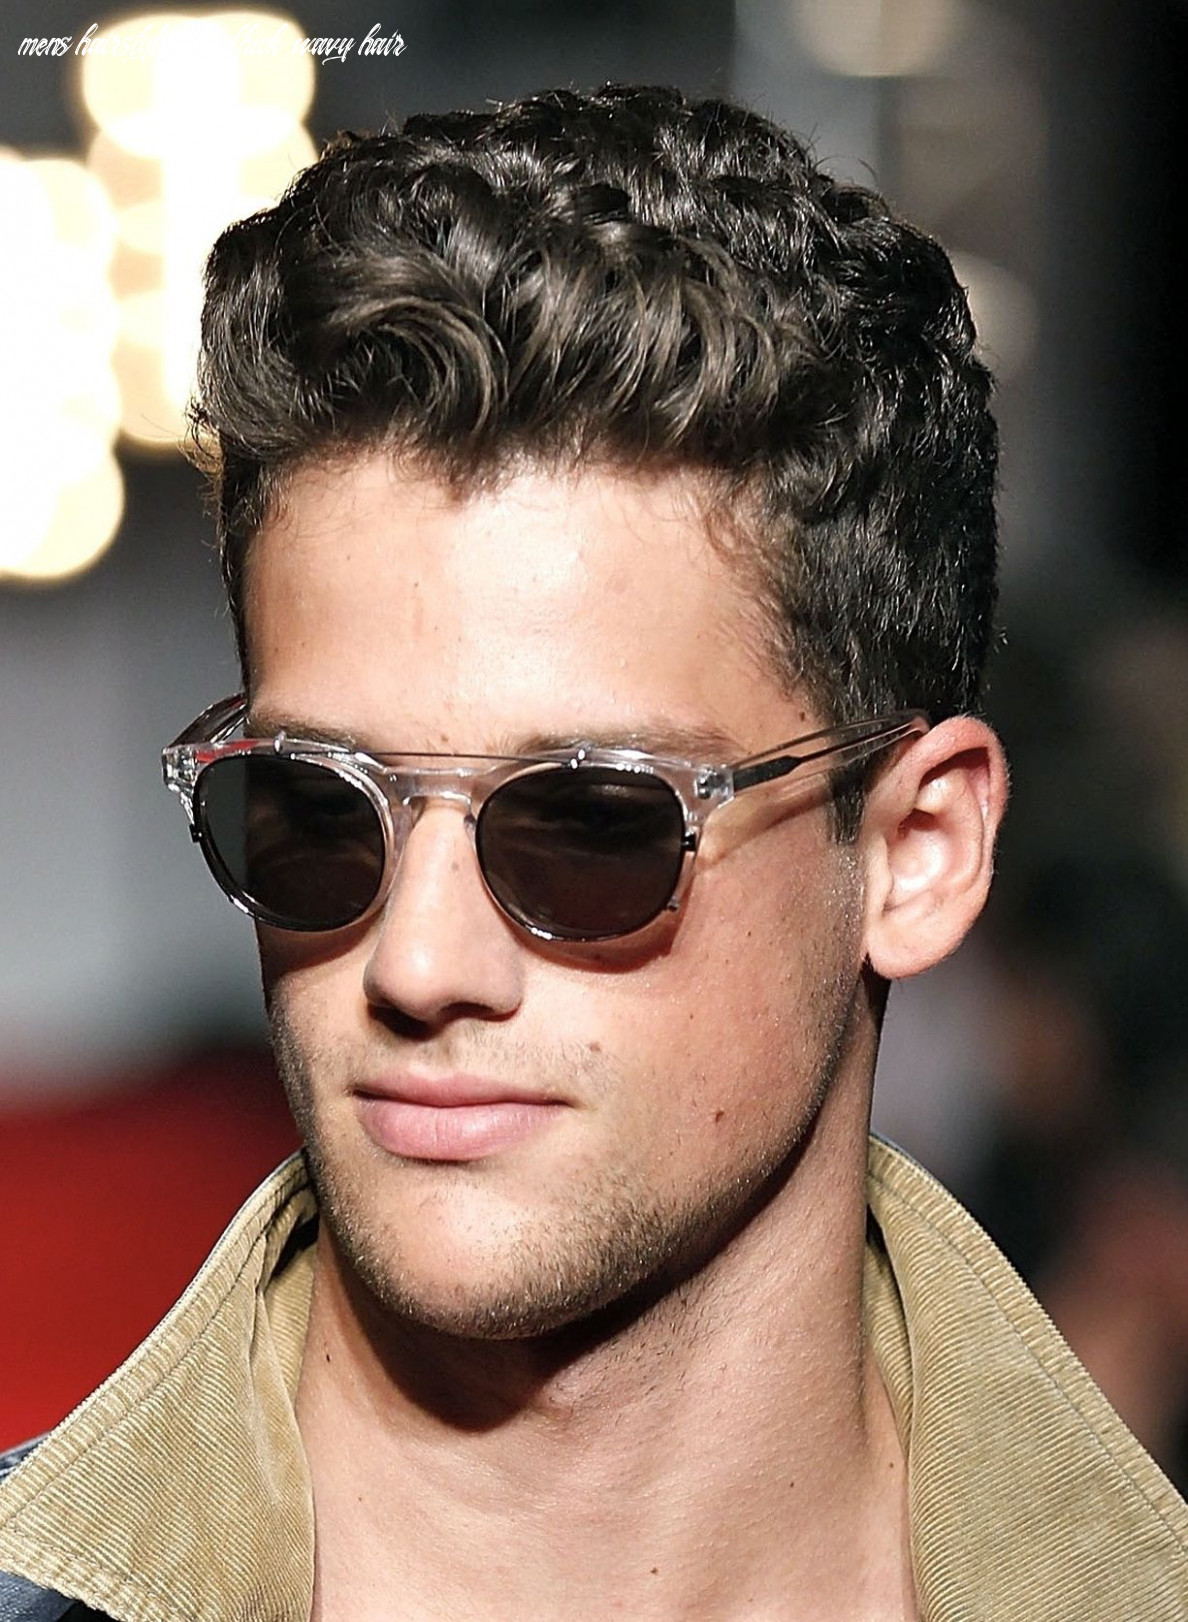 Hairstyles For Men With Thick Curly Hair | Wavy hair men, Men's ...